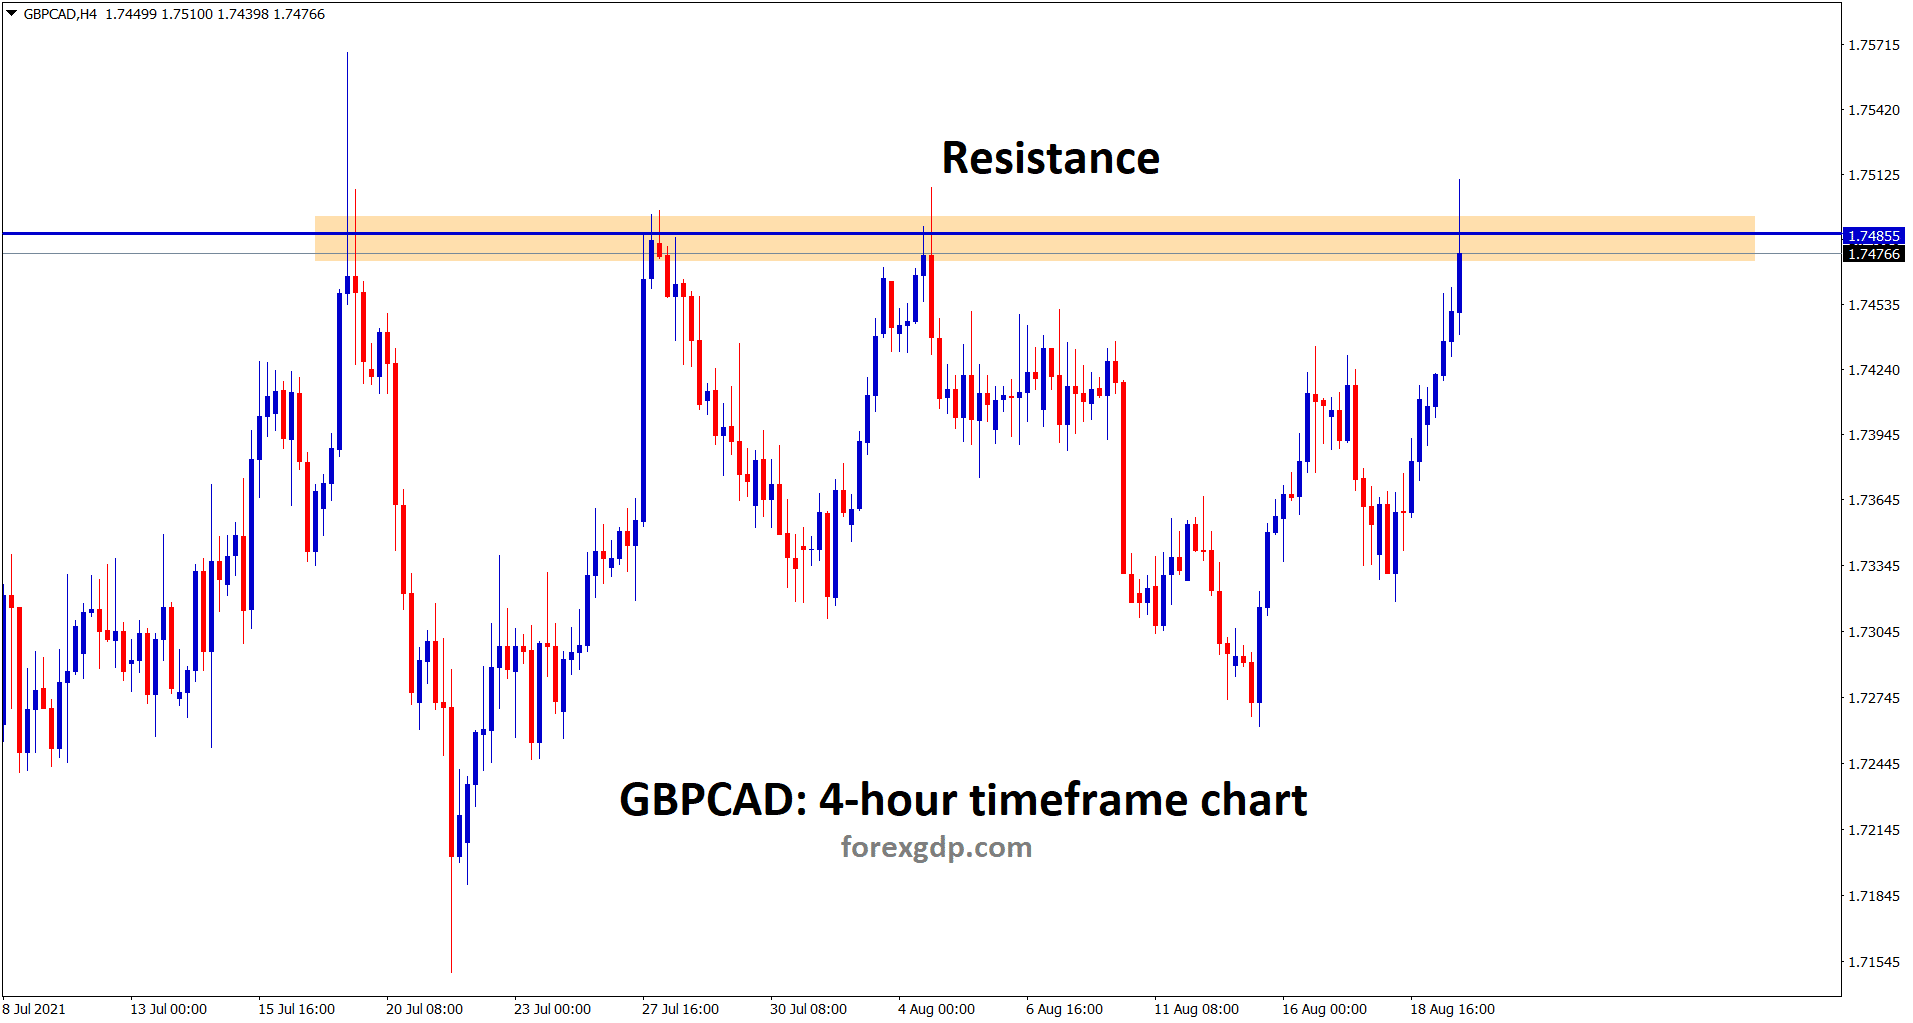 GBPCAD reached the resistance area again for the 4th time wait for breakout or reversal